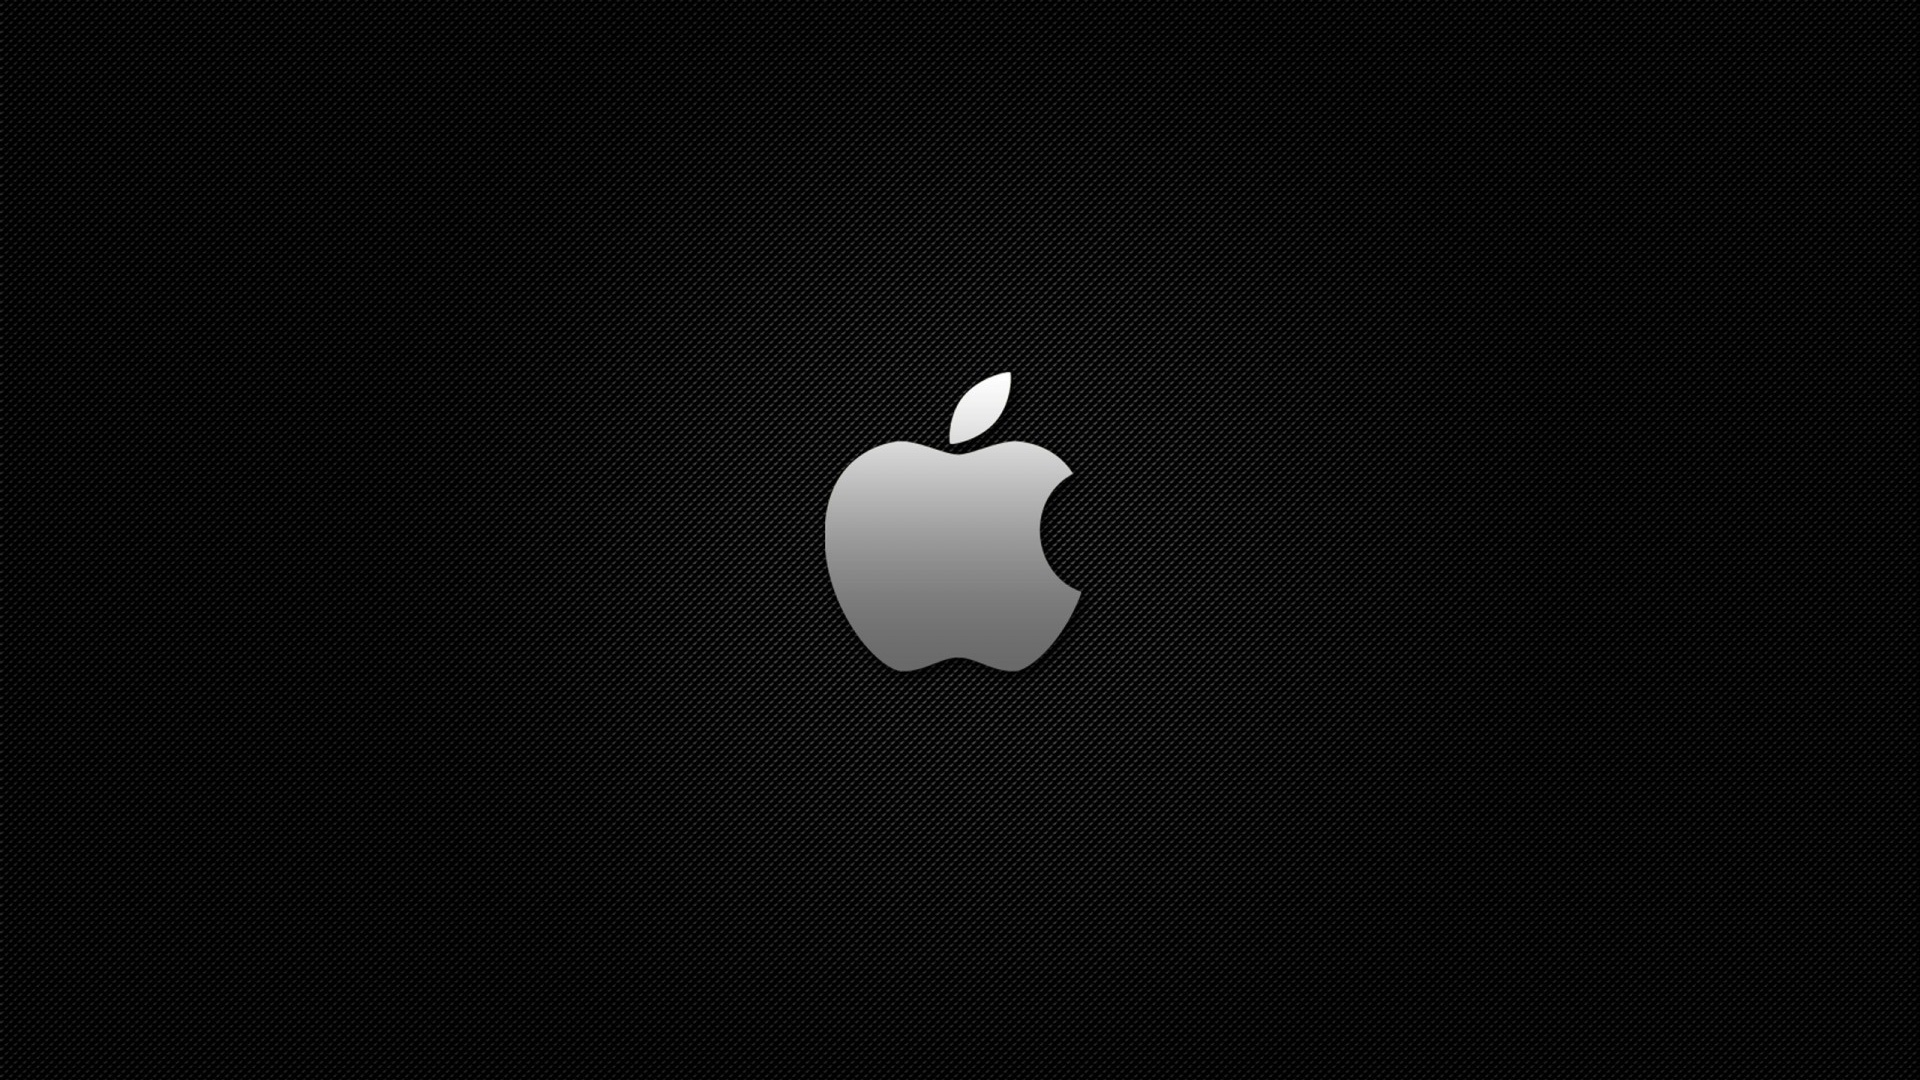 Apple Wallpaper White And Black Images amp Pictures   Becuo 1920x1080